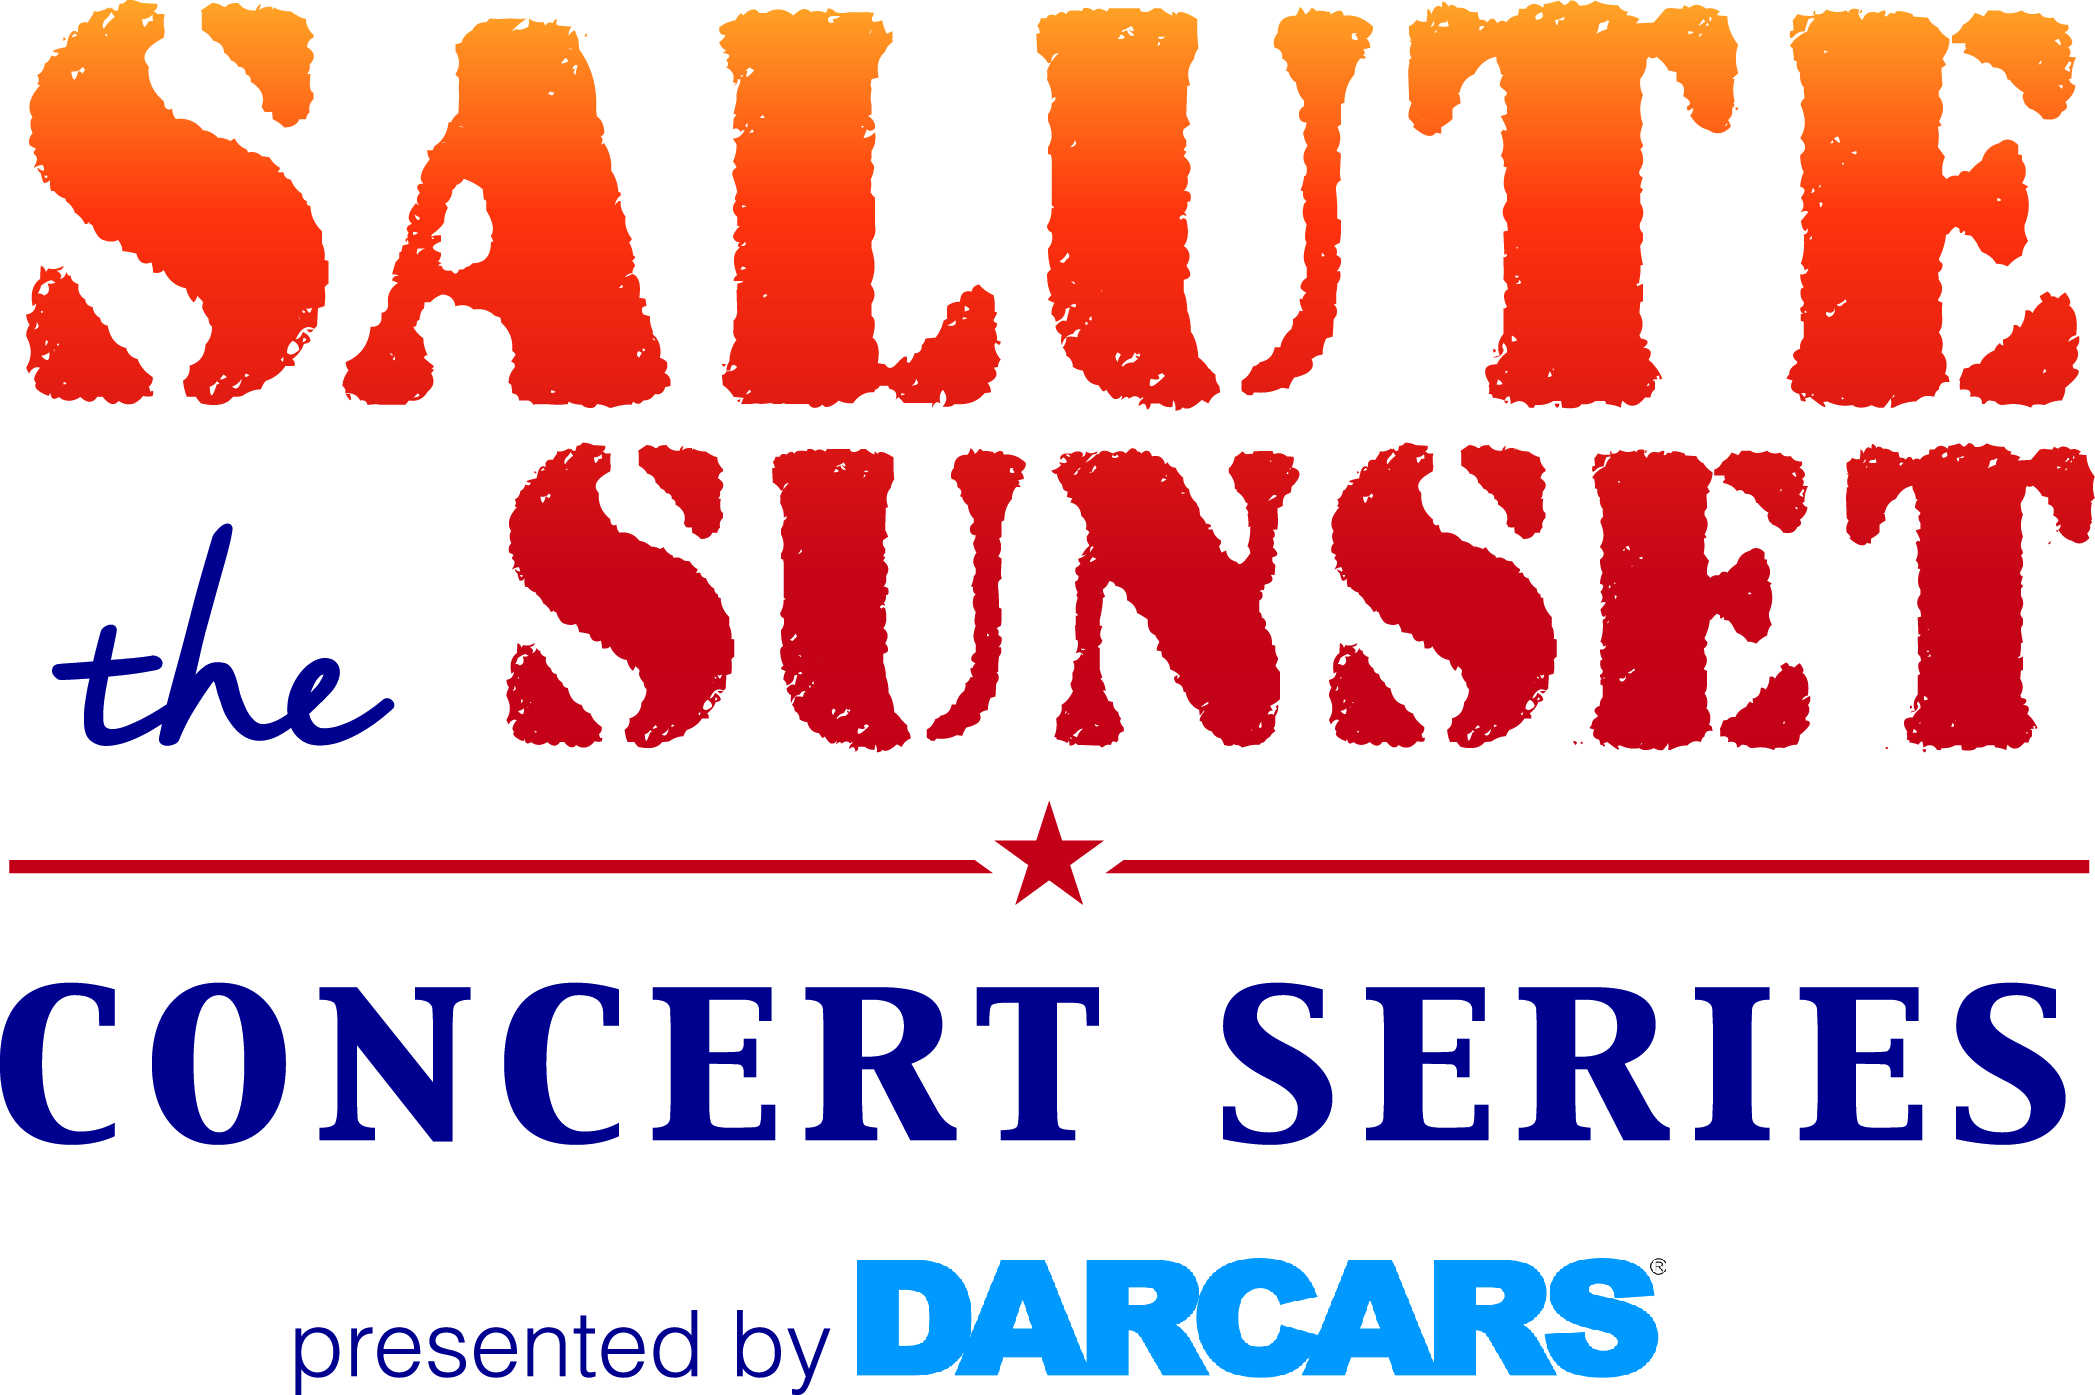 salute-the-sunset-logo-d1